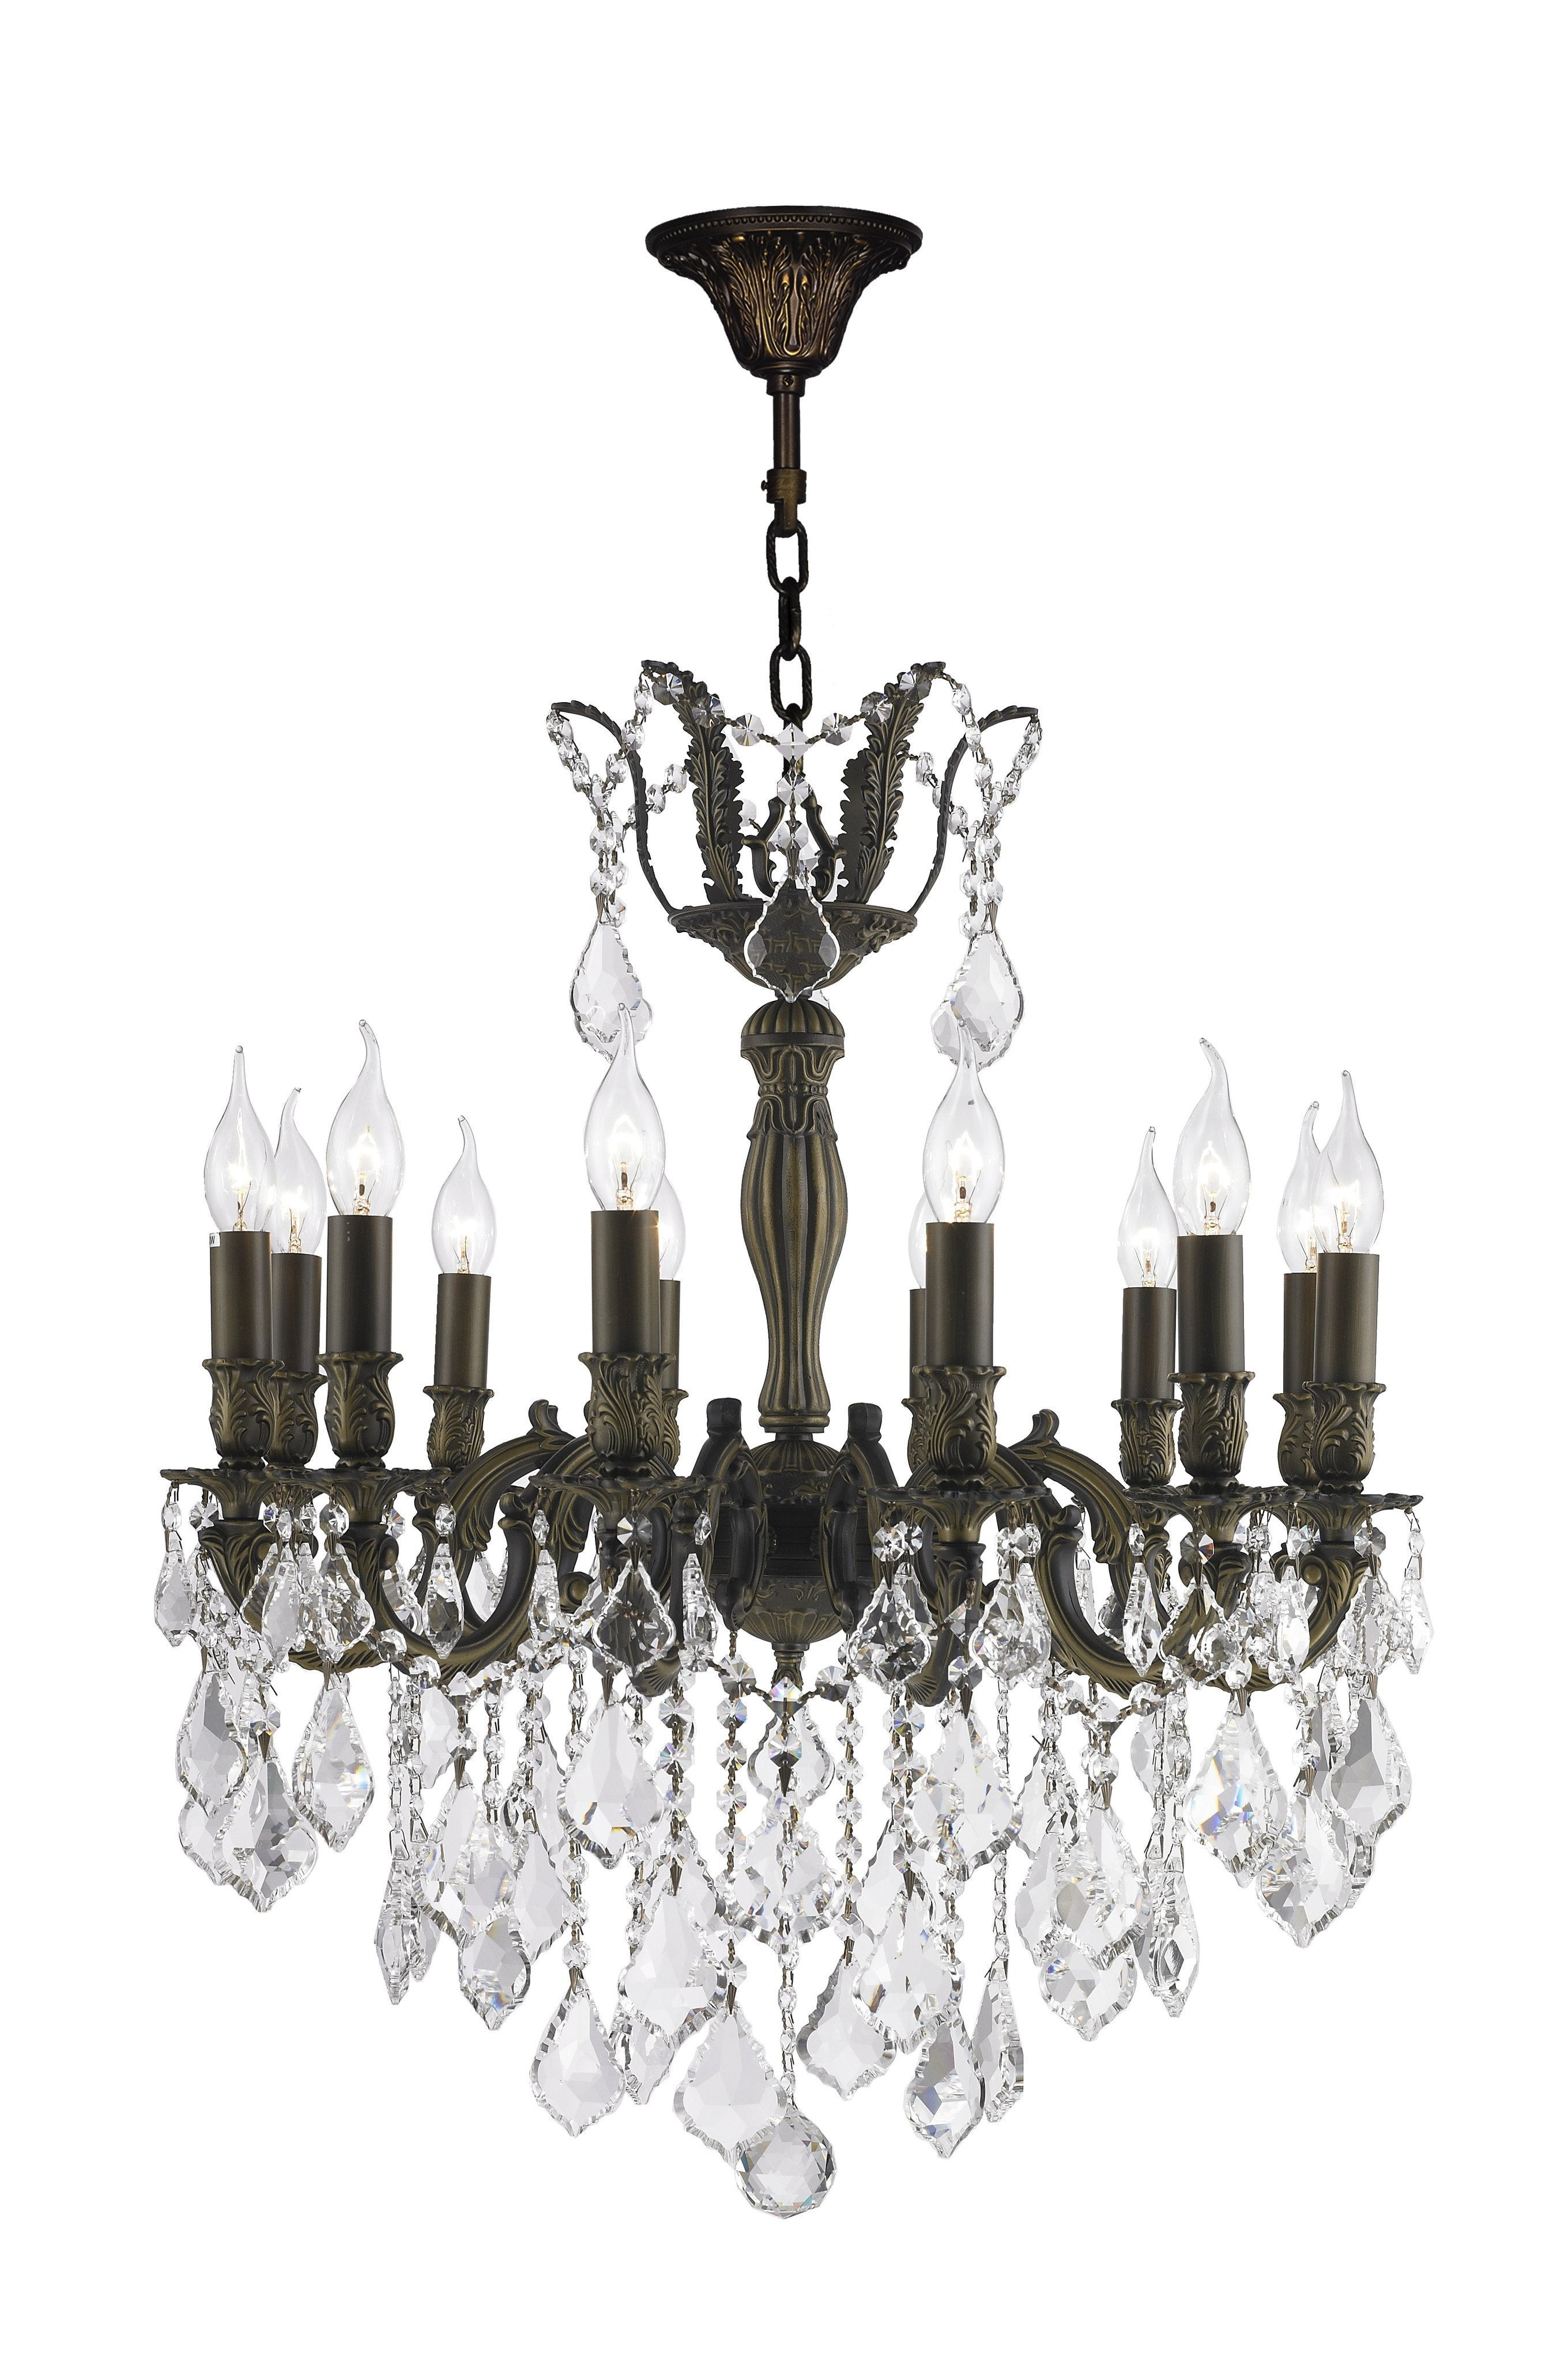 com bronze largelighting brass chandelier chandeliers